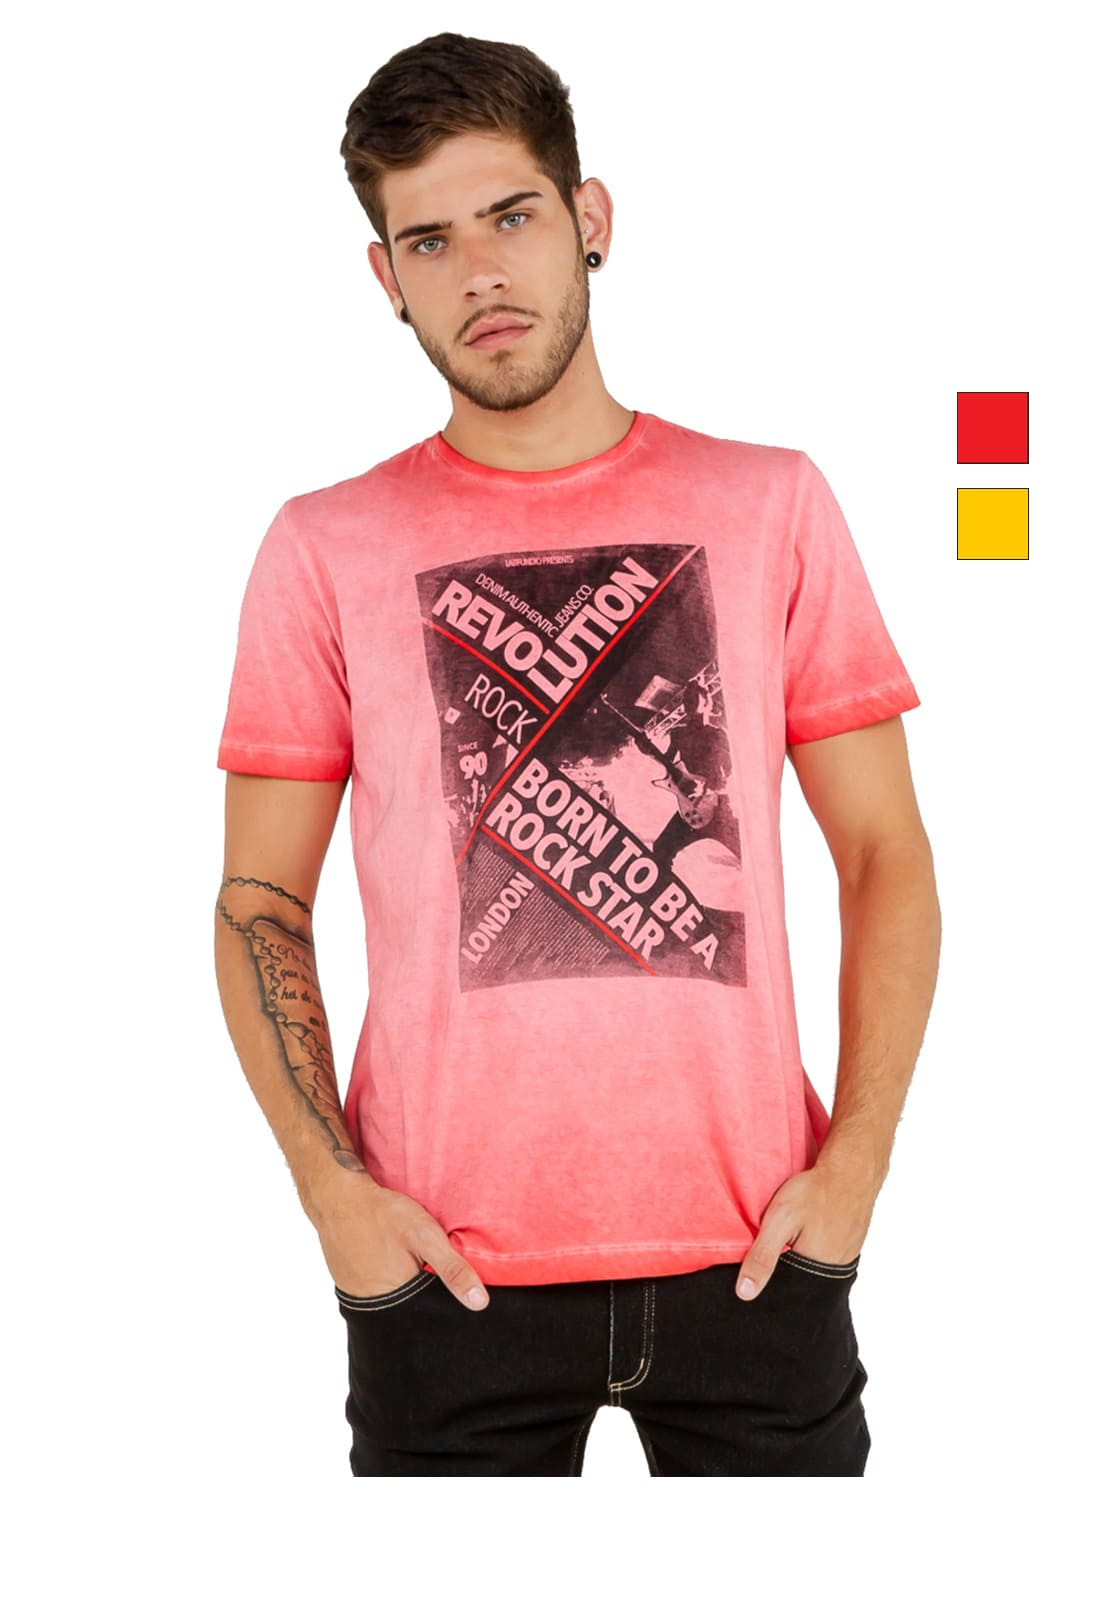 T-shirt Camiseta Masculina Latifundio Rock Star